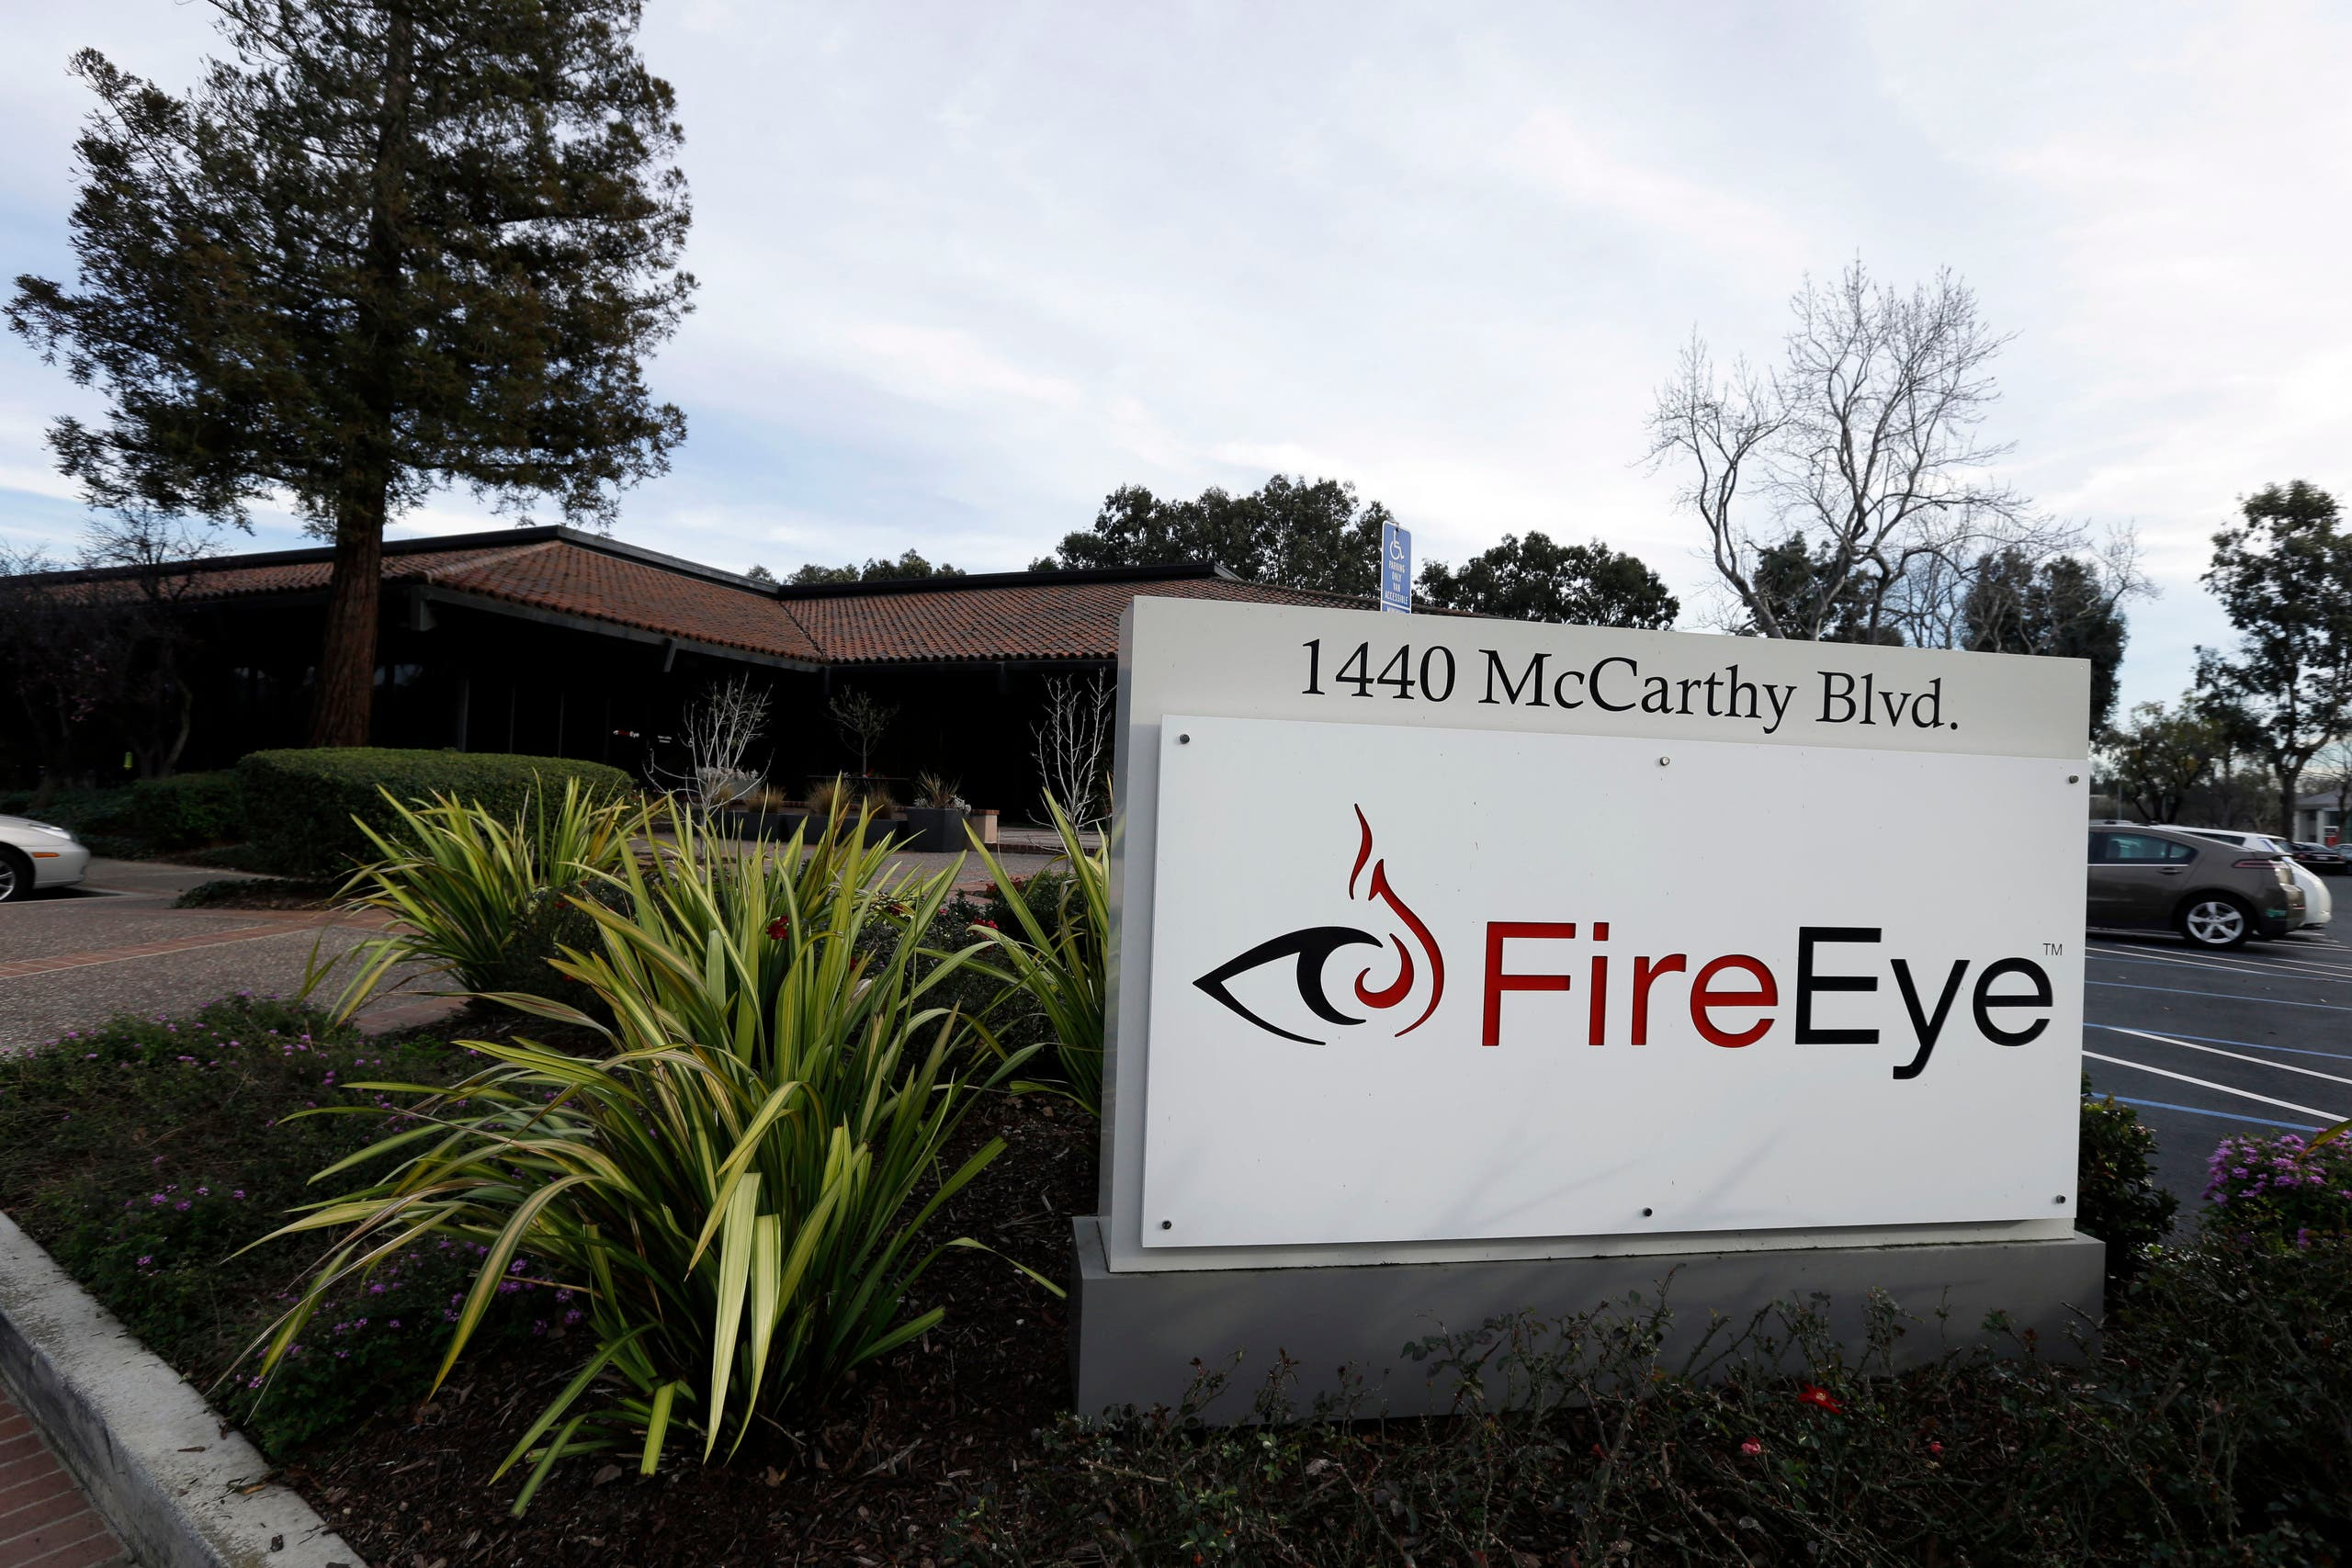 FireEye offices in Milpitas, Calif. (File photo: AP)